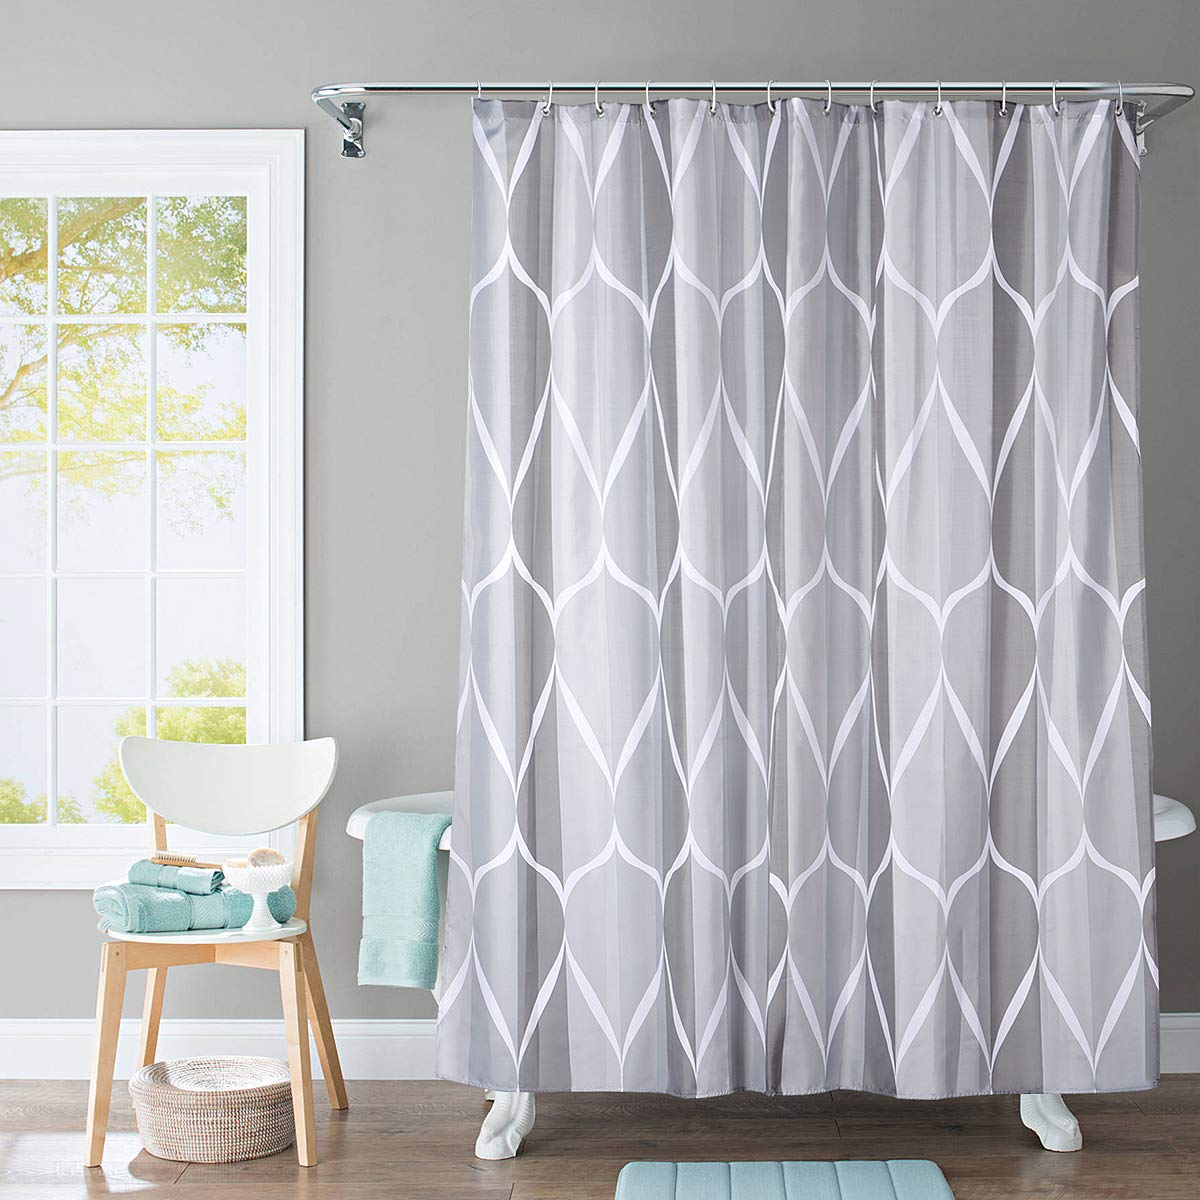 JRing Shower Curtain Polyester Fabric Waterproof Machine Washable with 12 Hooks 72x72 Inch by JRing (Image #1)